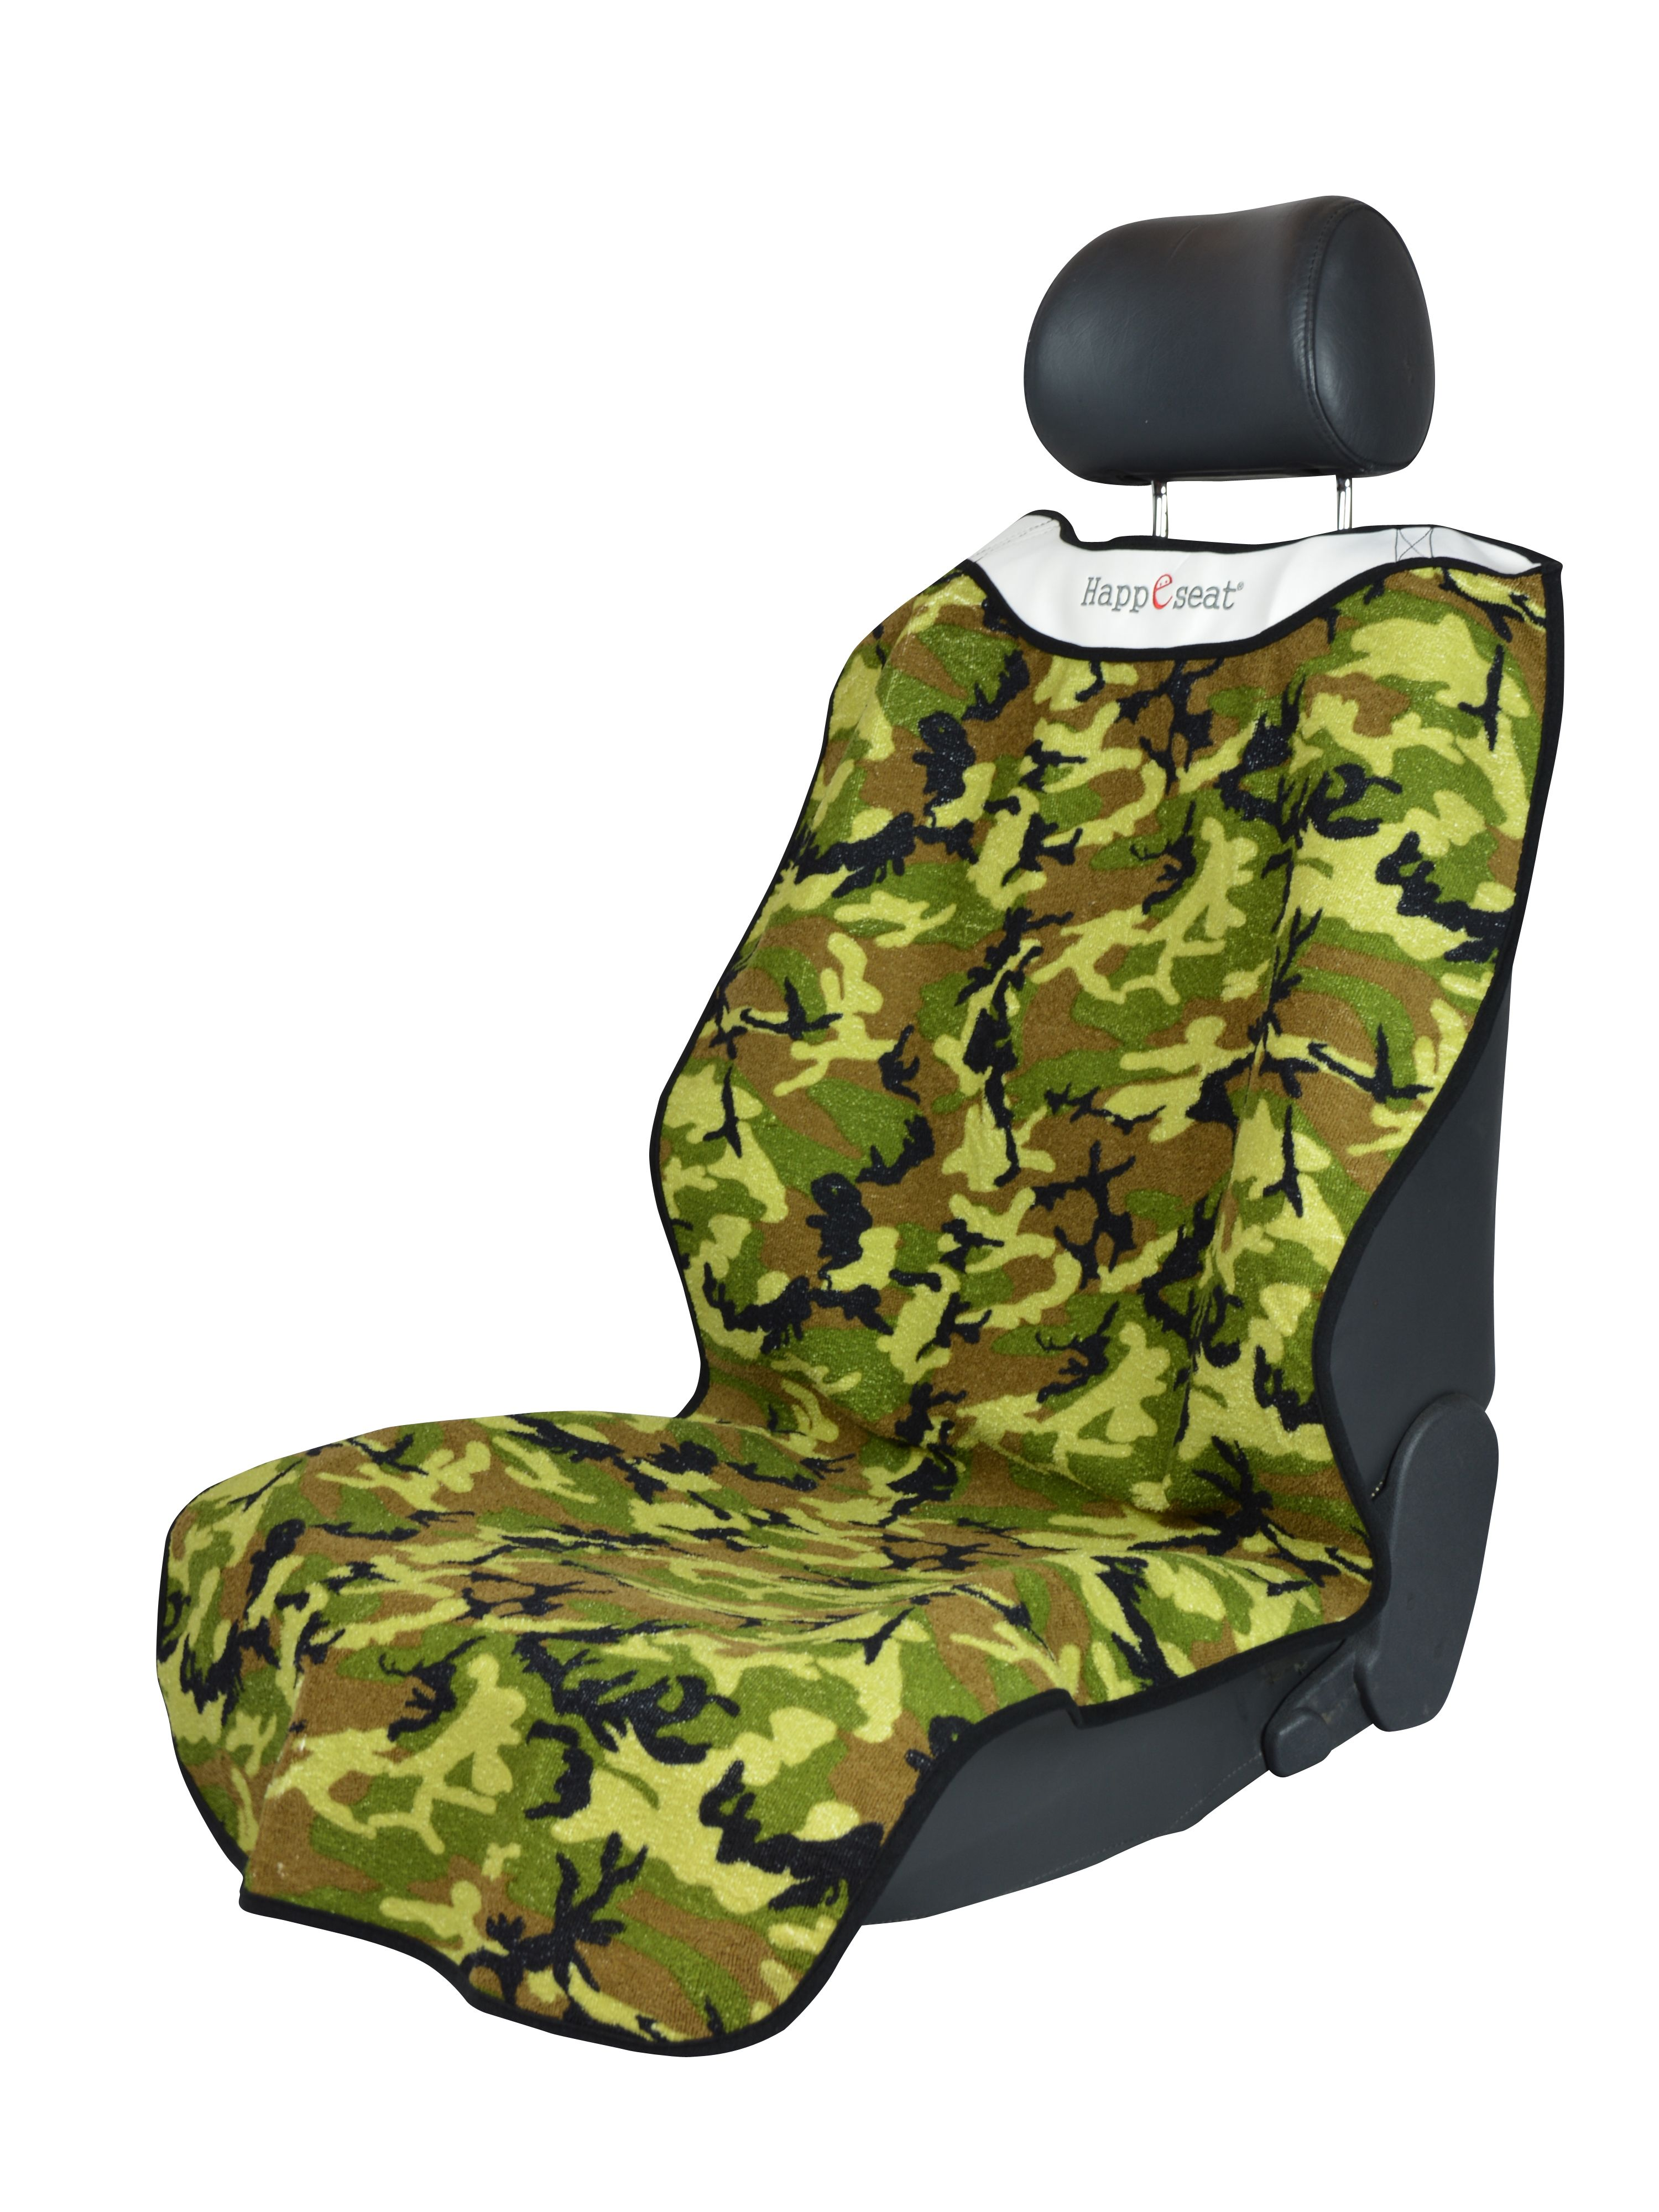 Camouflage happeseat at car seats